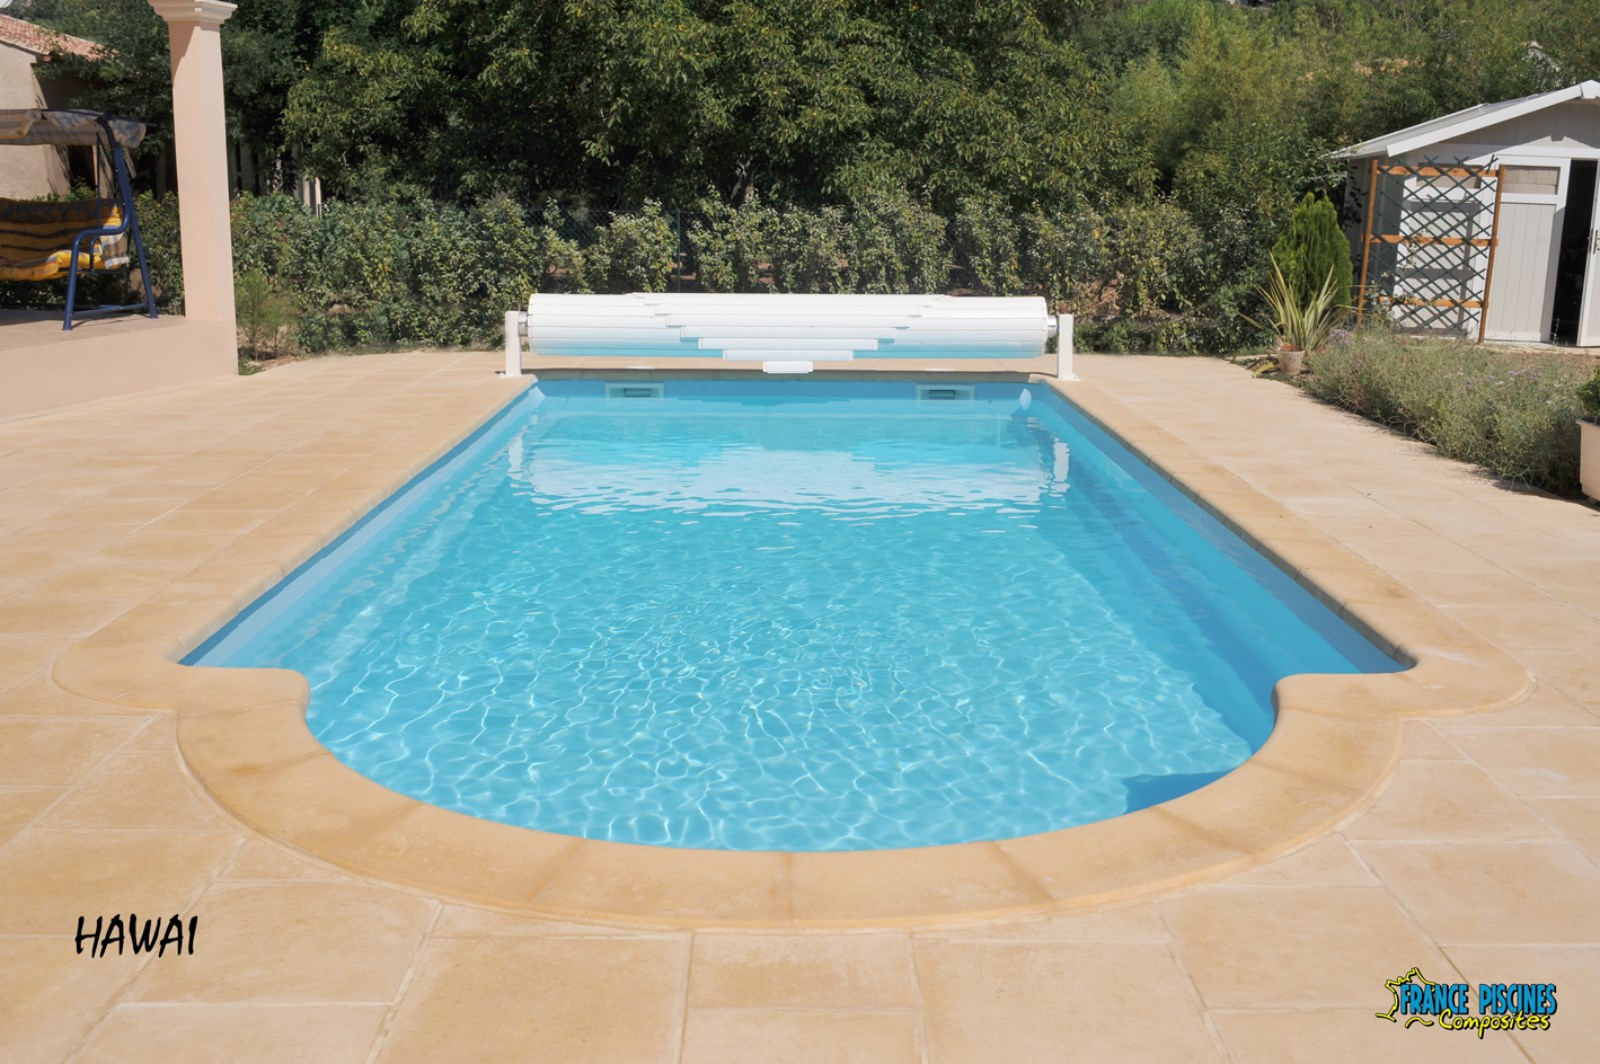 Piscine coque 9 4 rw51 jornalagora for Vente piscine coque